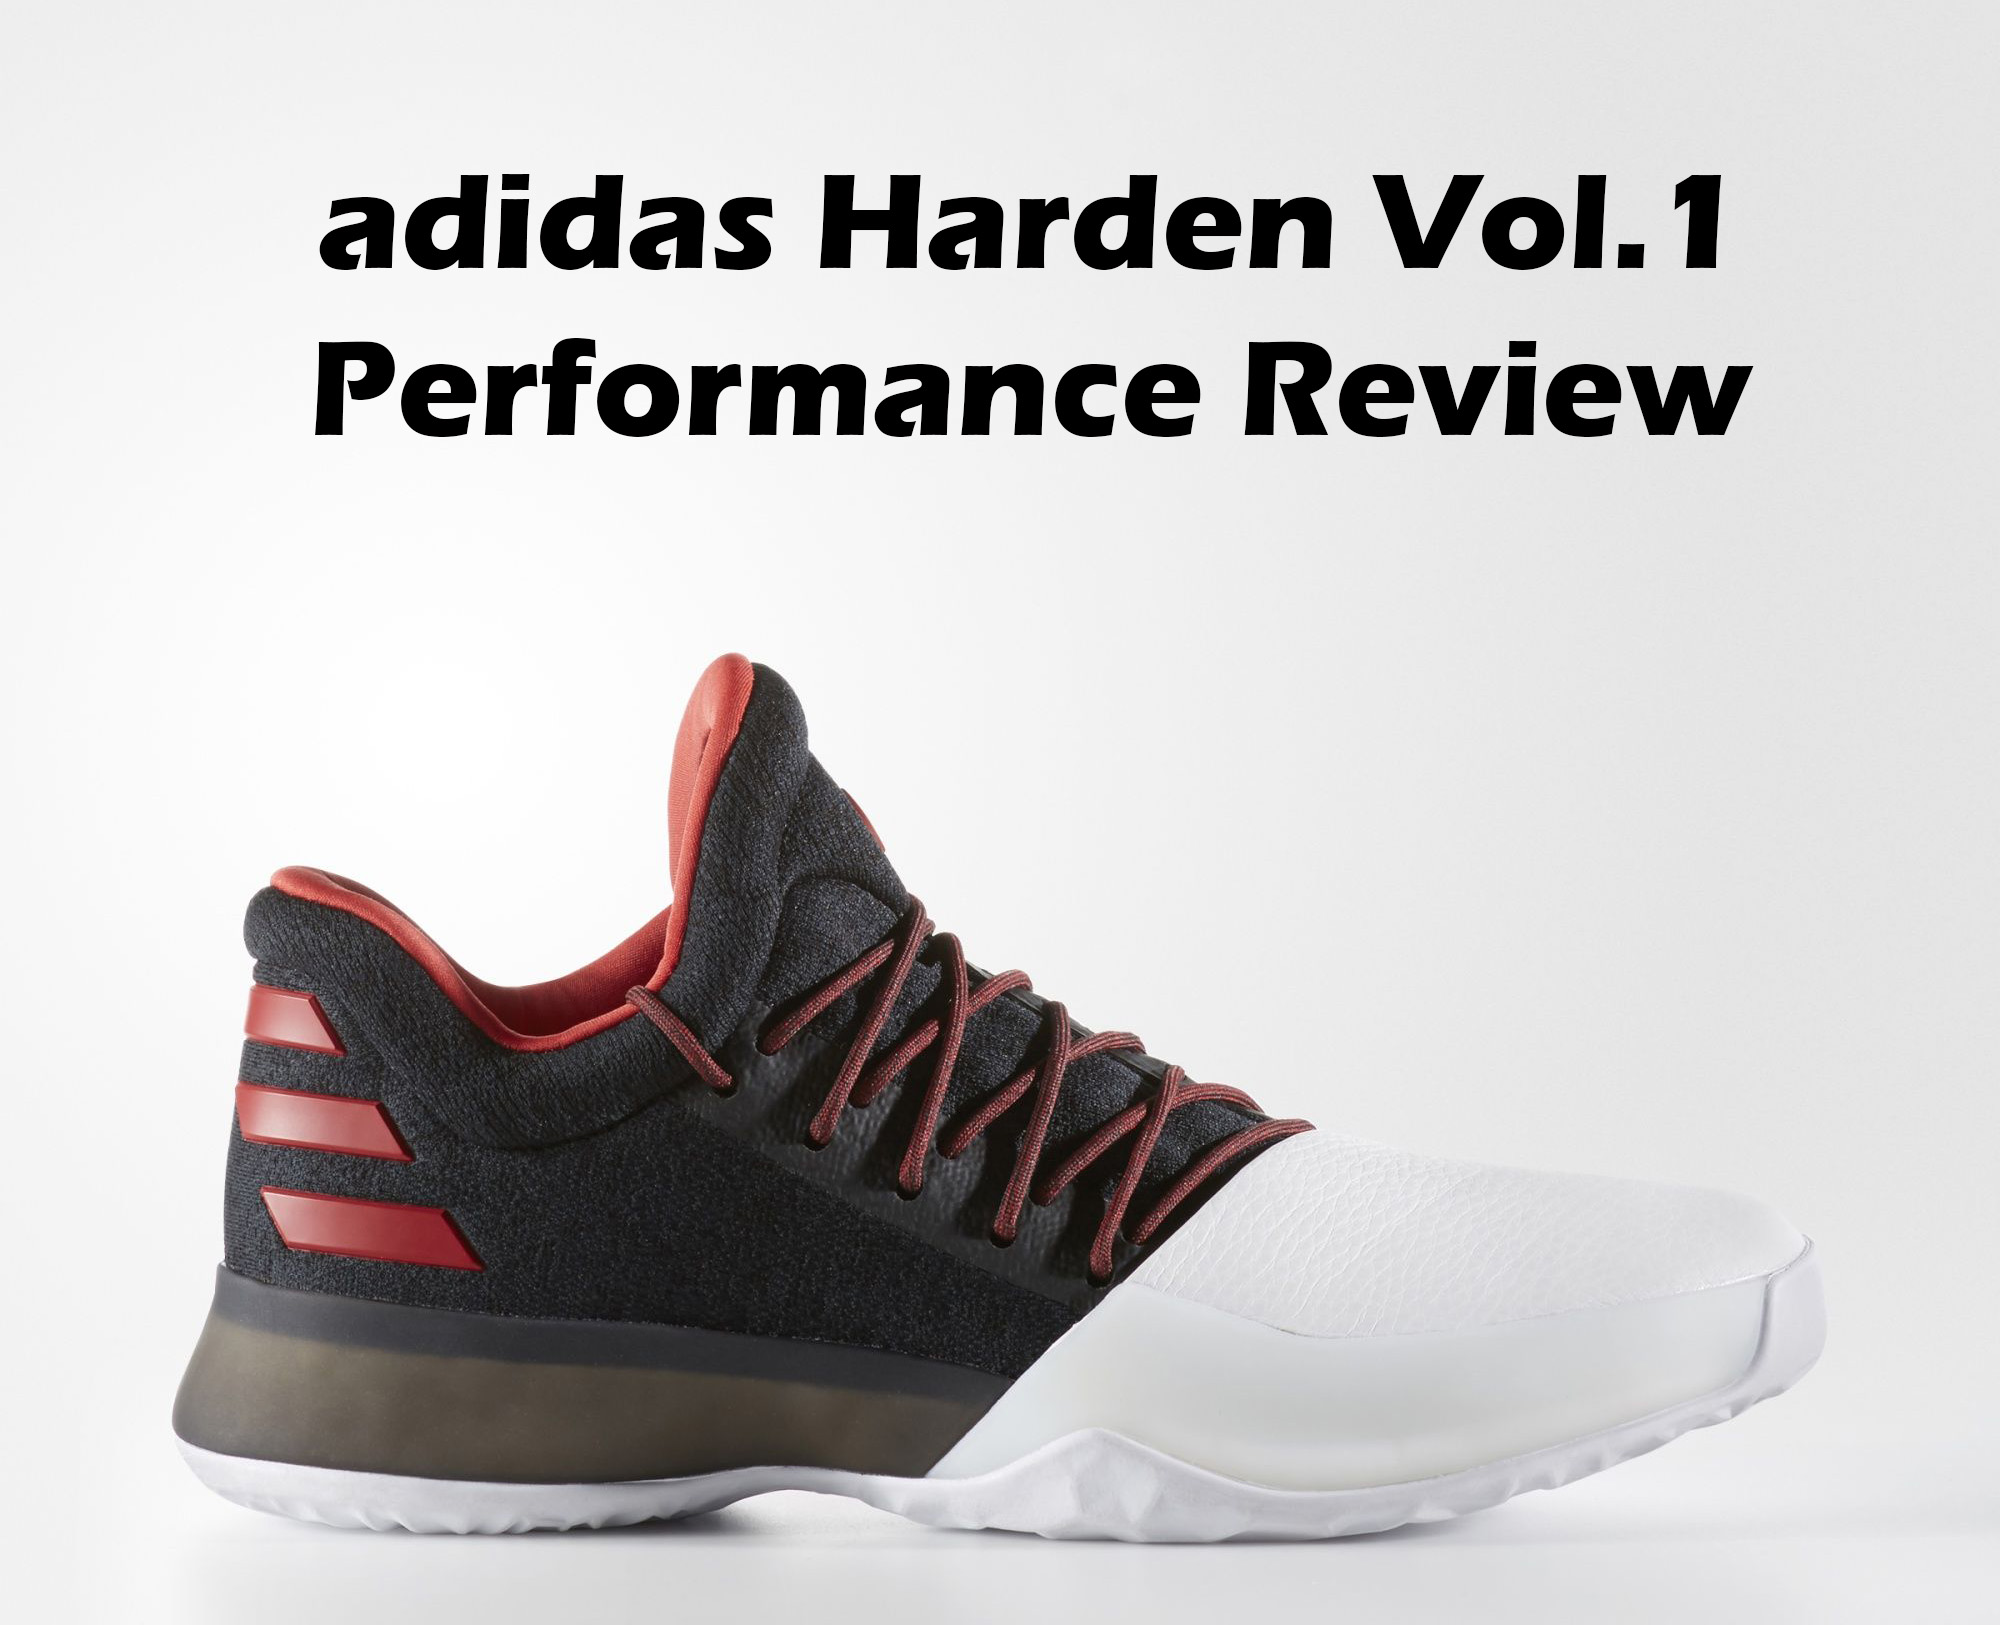 e69169b6bfef Today we got the first James Harden signature shoe – The adidas Harden Vol.  1. Adidas right now on a big role of making great basketball and lifestyle  ...